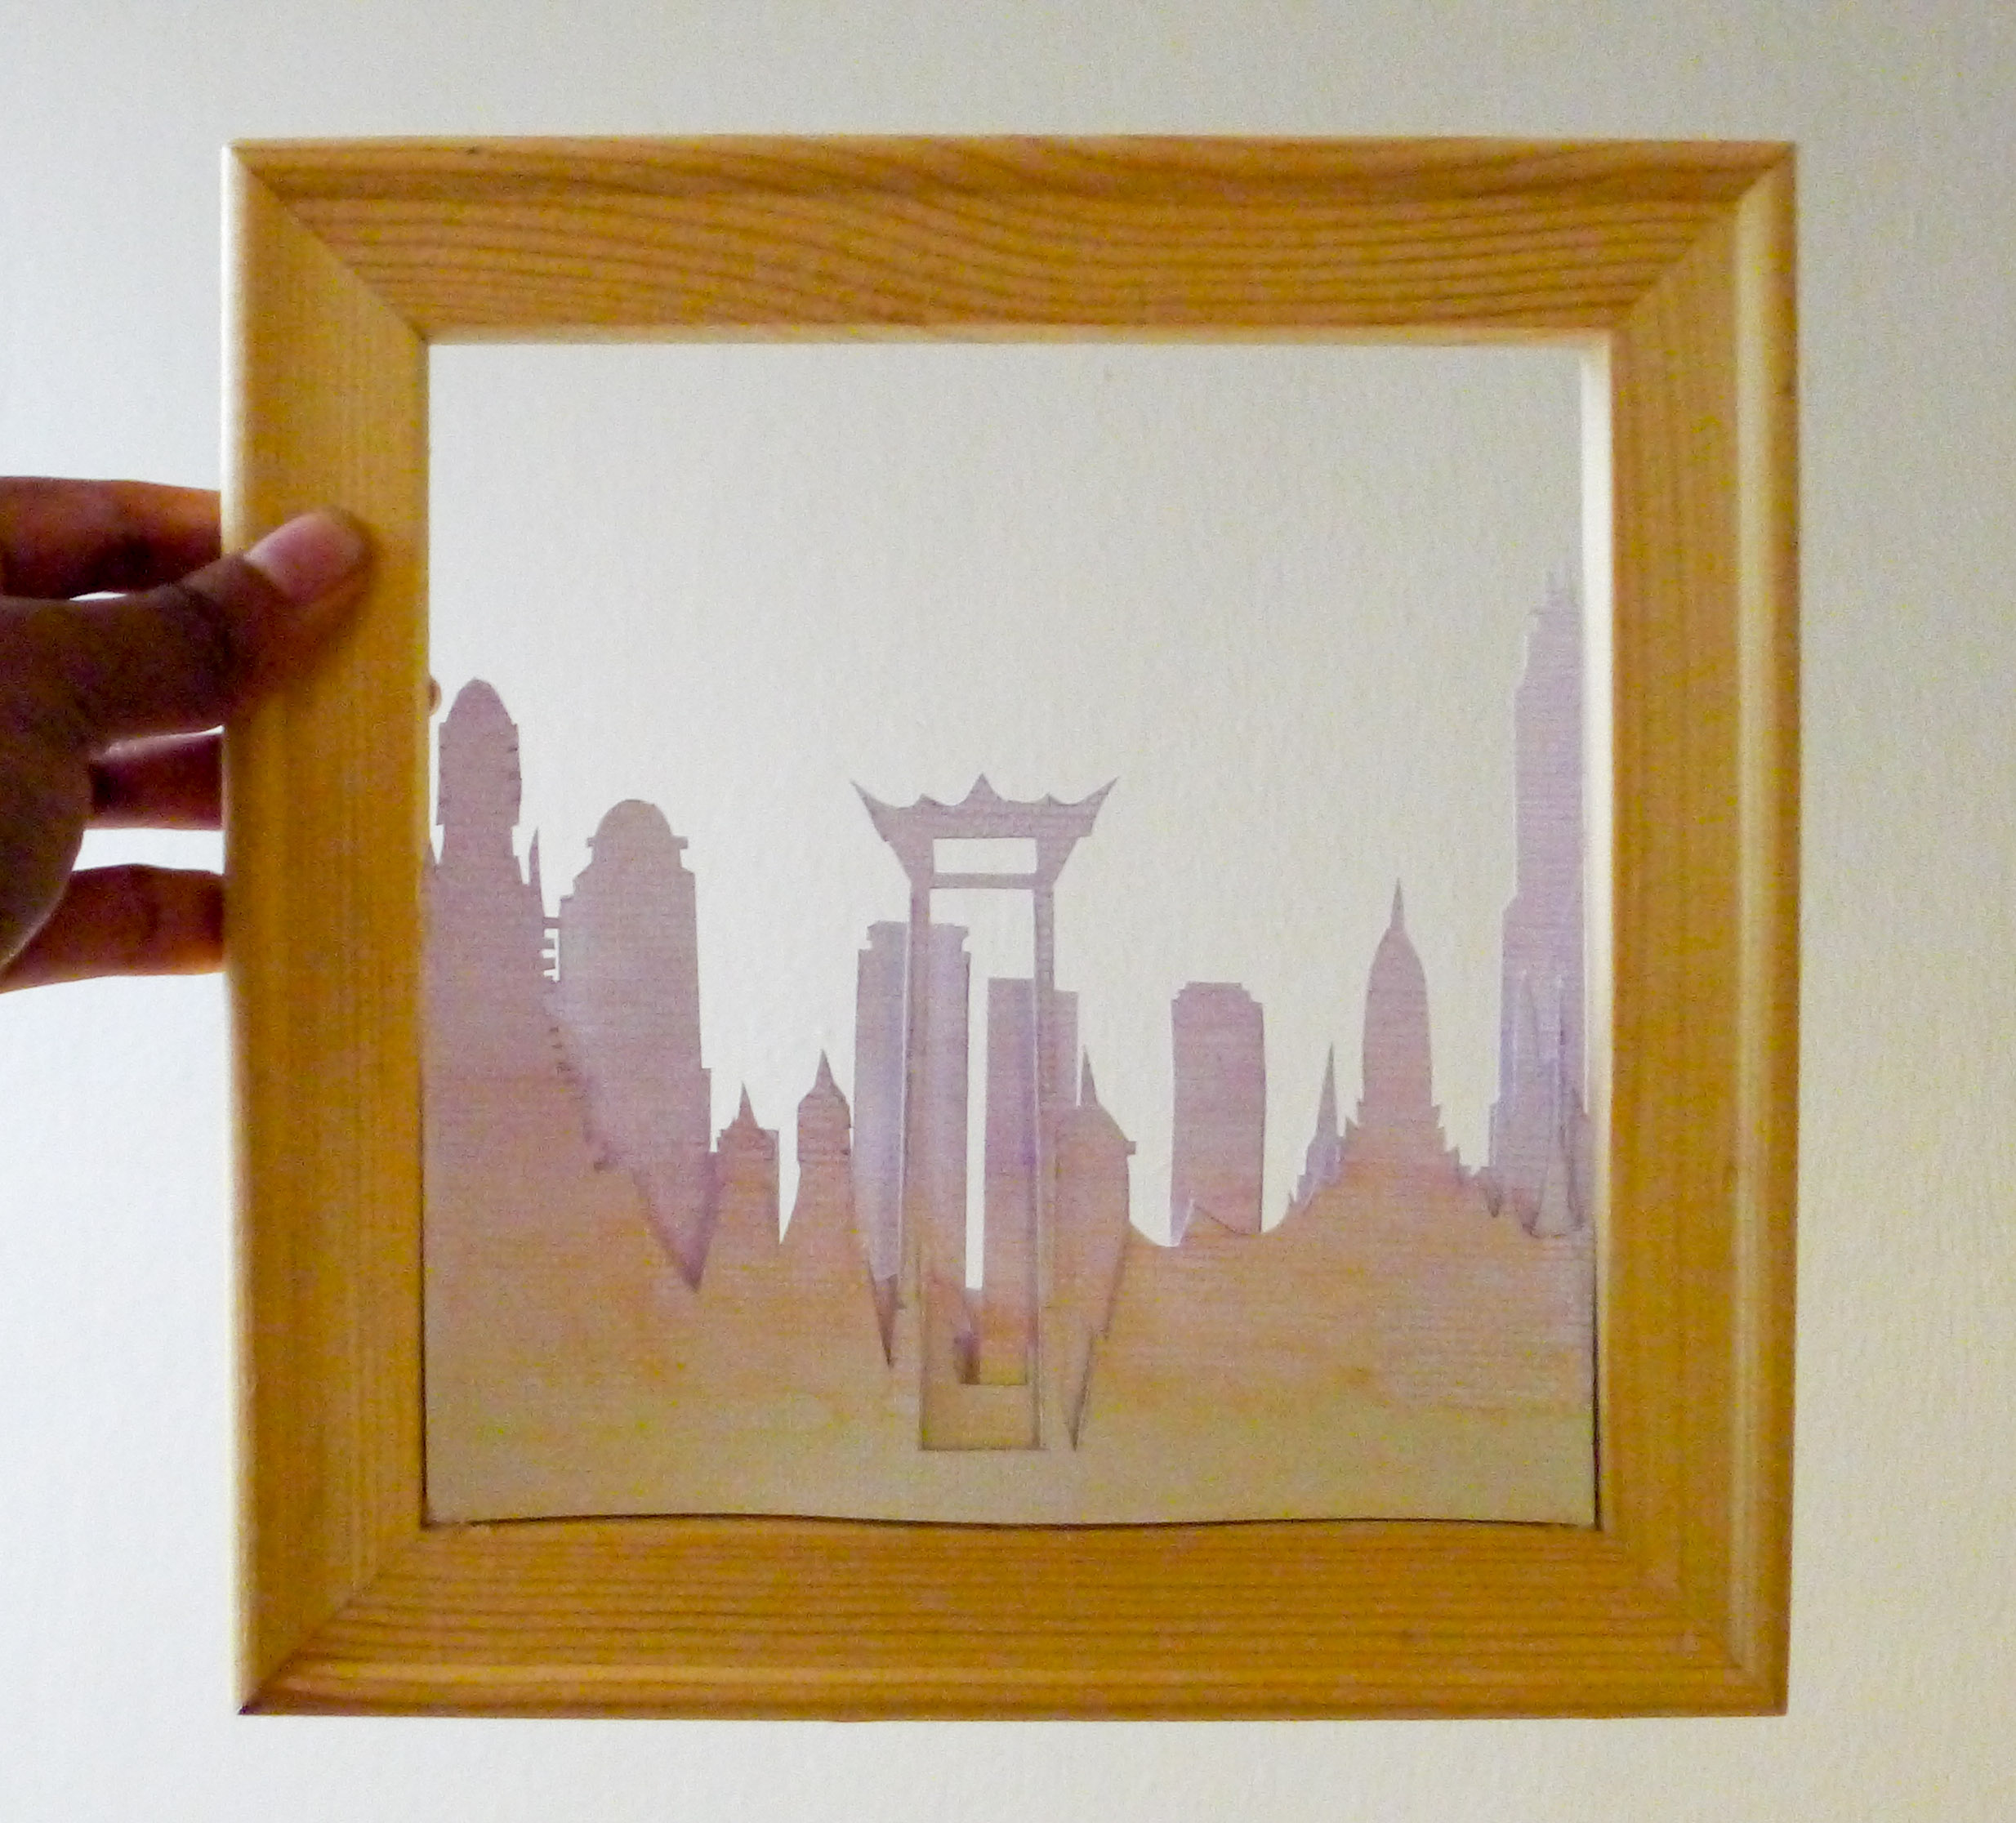 2017_DIY Lightbox_All Cut Out Layers in Wood Frame.jpg